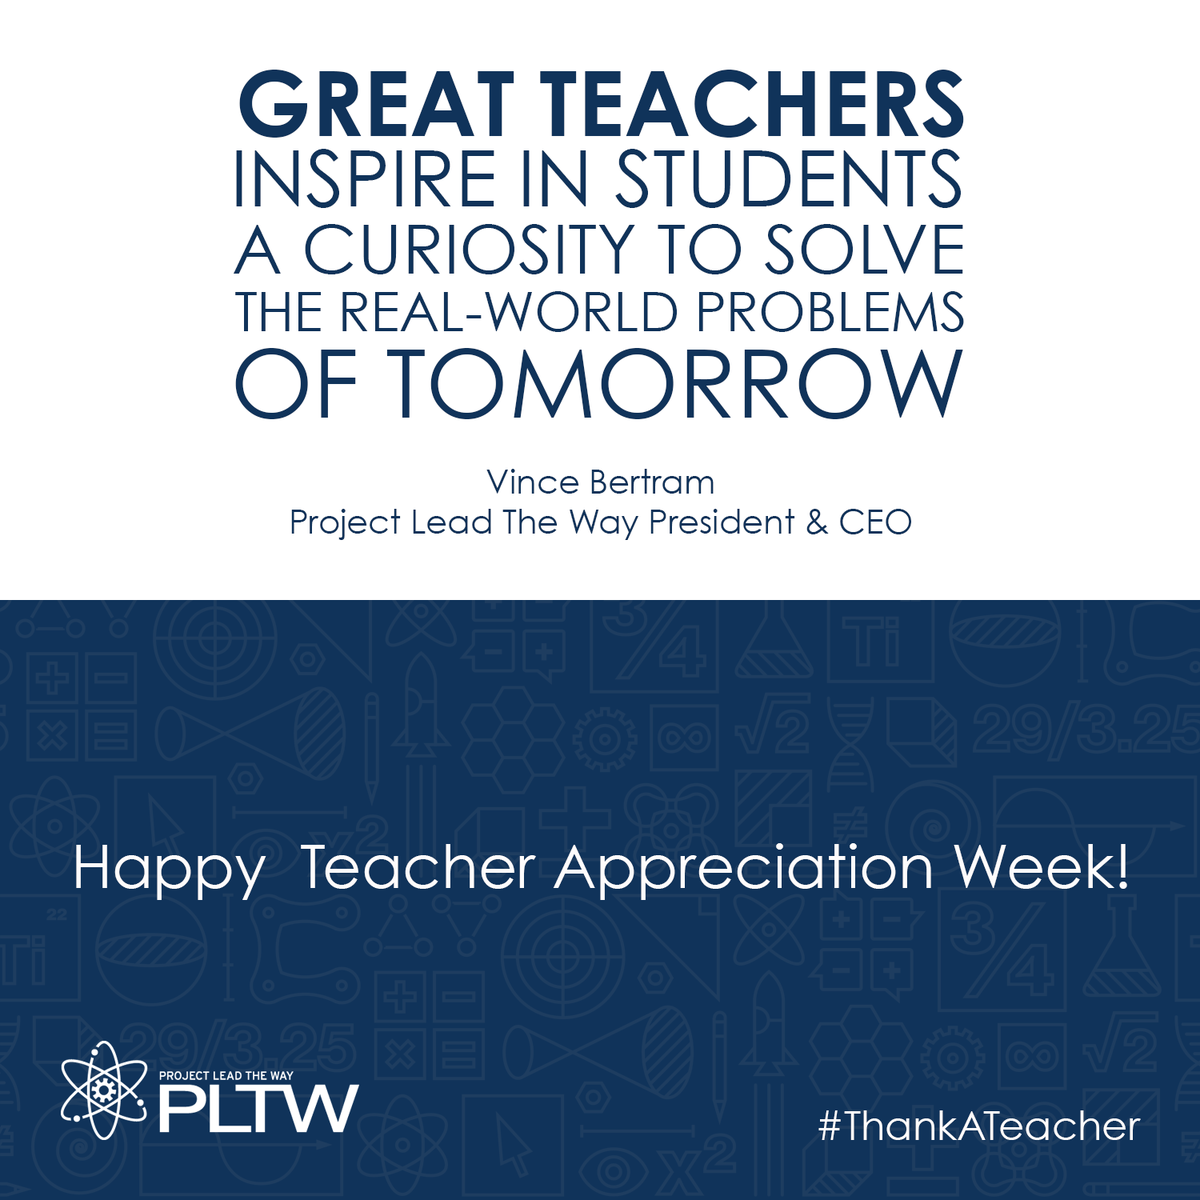 """Great #teachers inspire in students a curiosity to solve the real-world problems of tomorrow."" #ThankATeacher http://t.co/ZMrHseiipf"